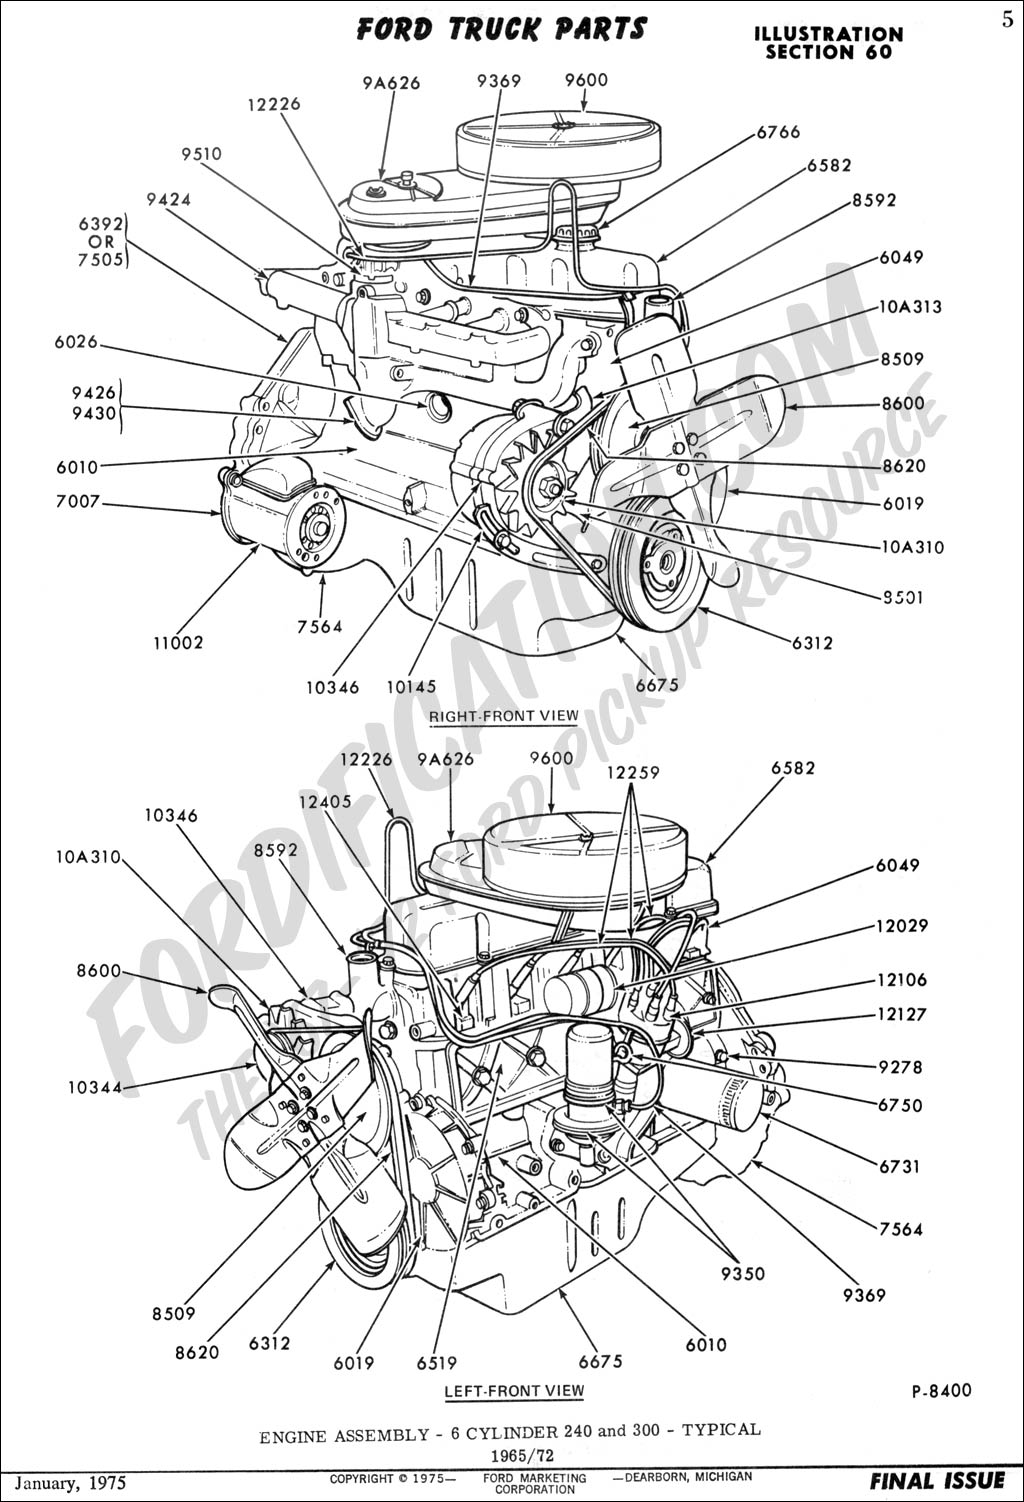 ford 302 engine parts diagram male fetal pig 352 get free image about wiring